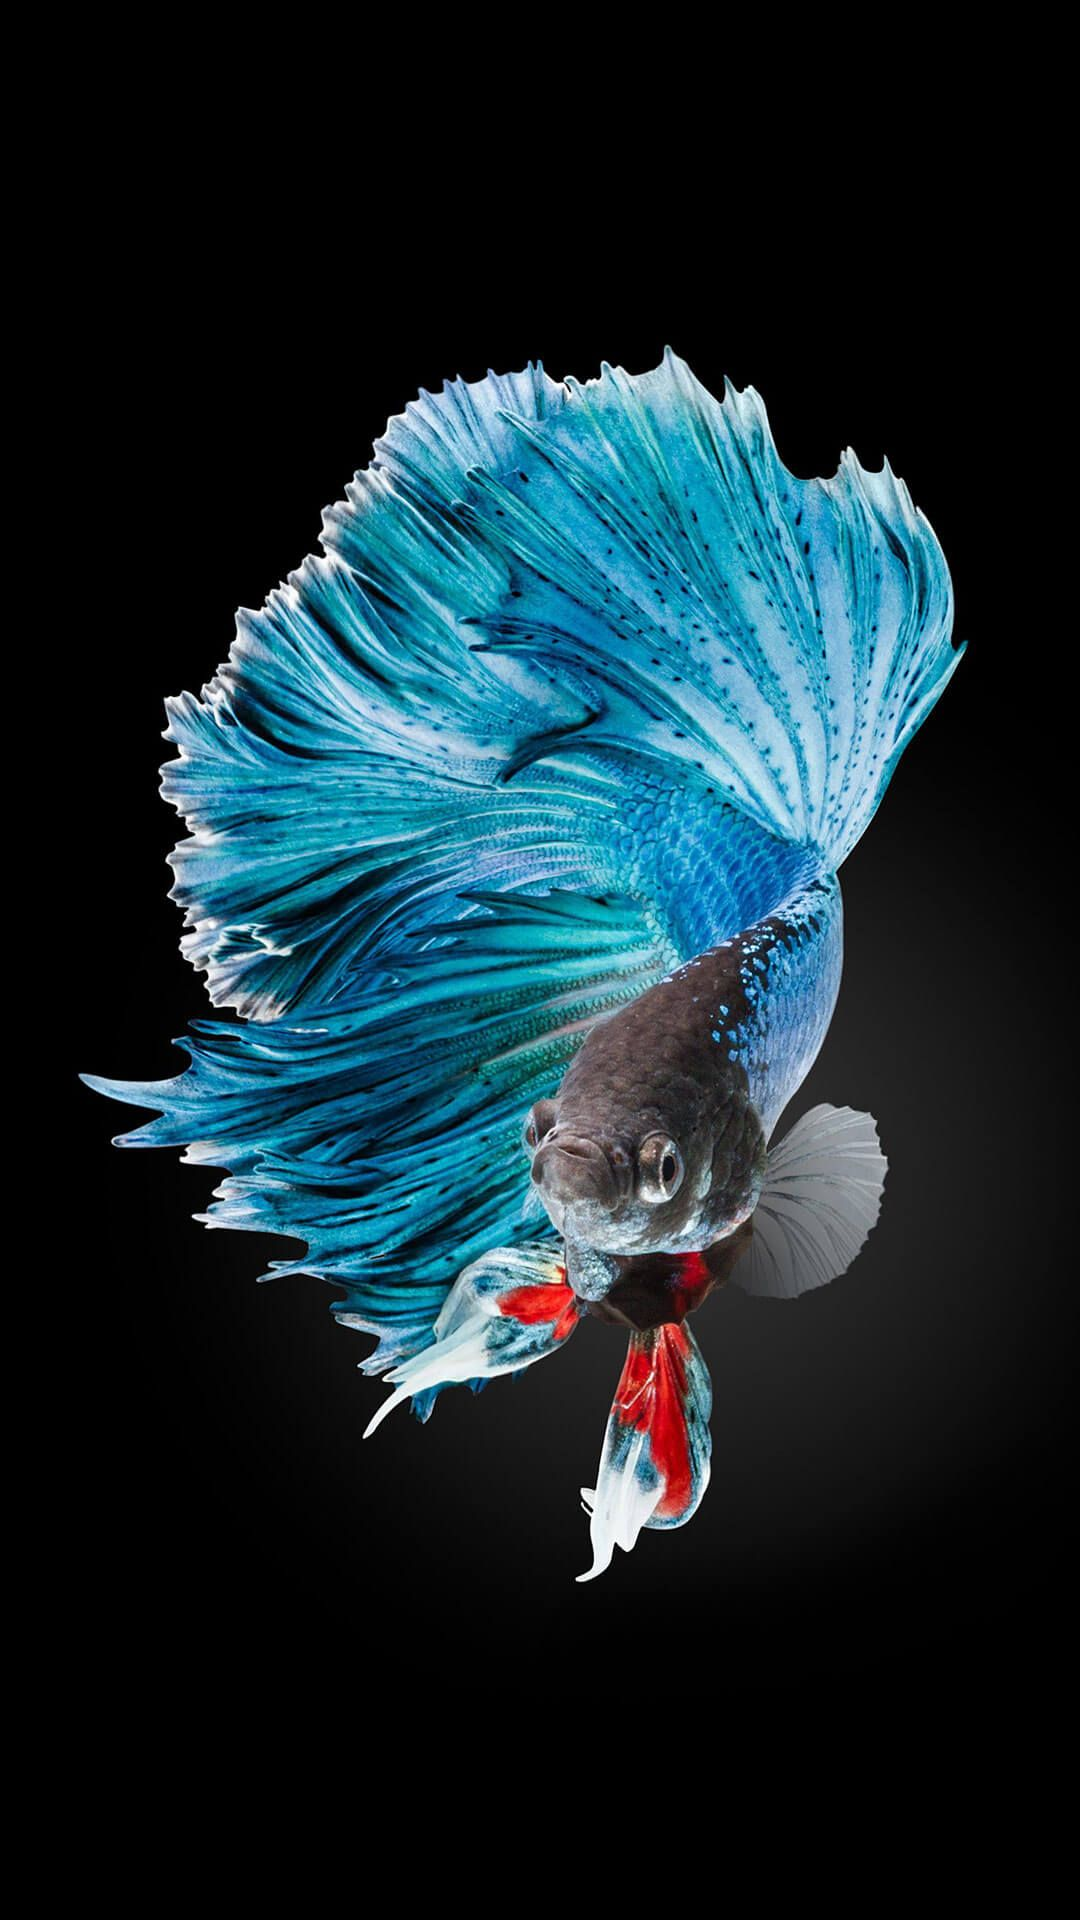 Betta Fish Wallpaper Iphone 6 And Iphone 6s Hd Animal